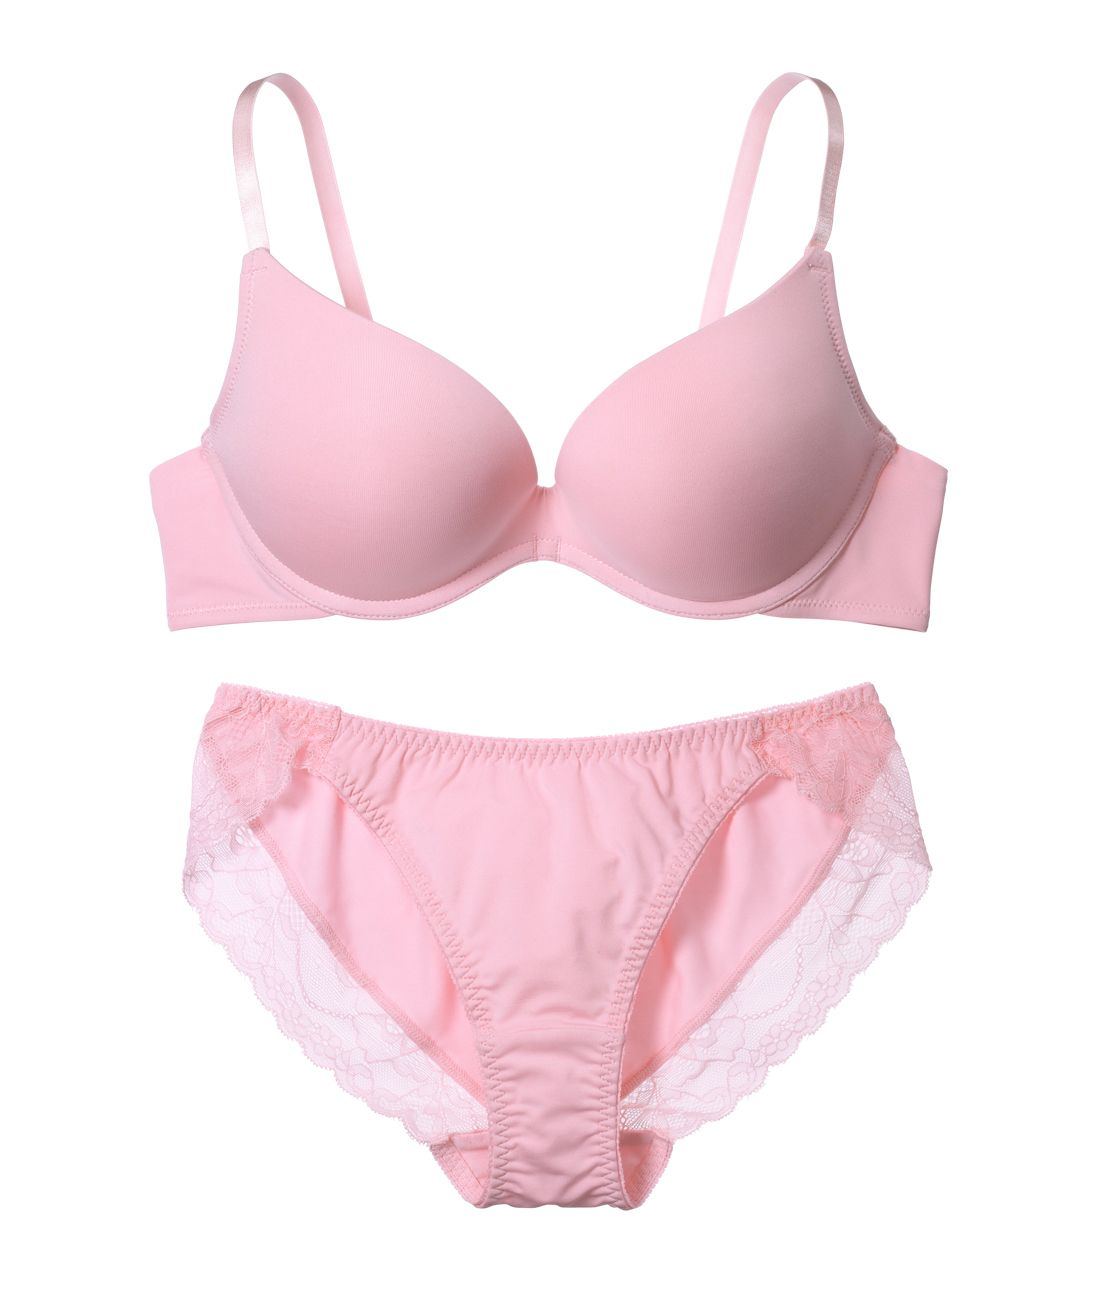 YM NEW Simple Bra Set